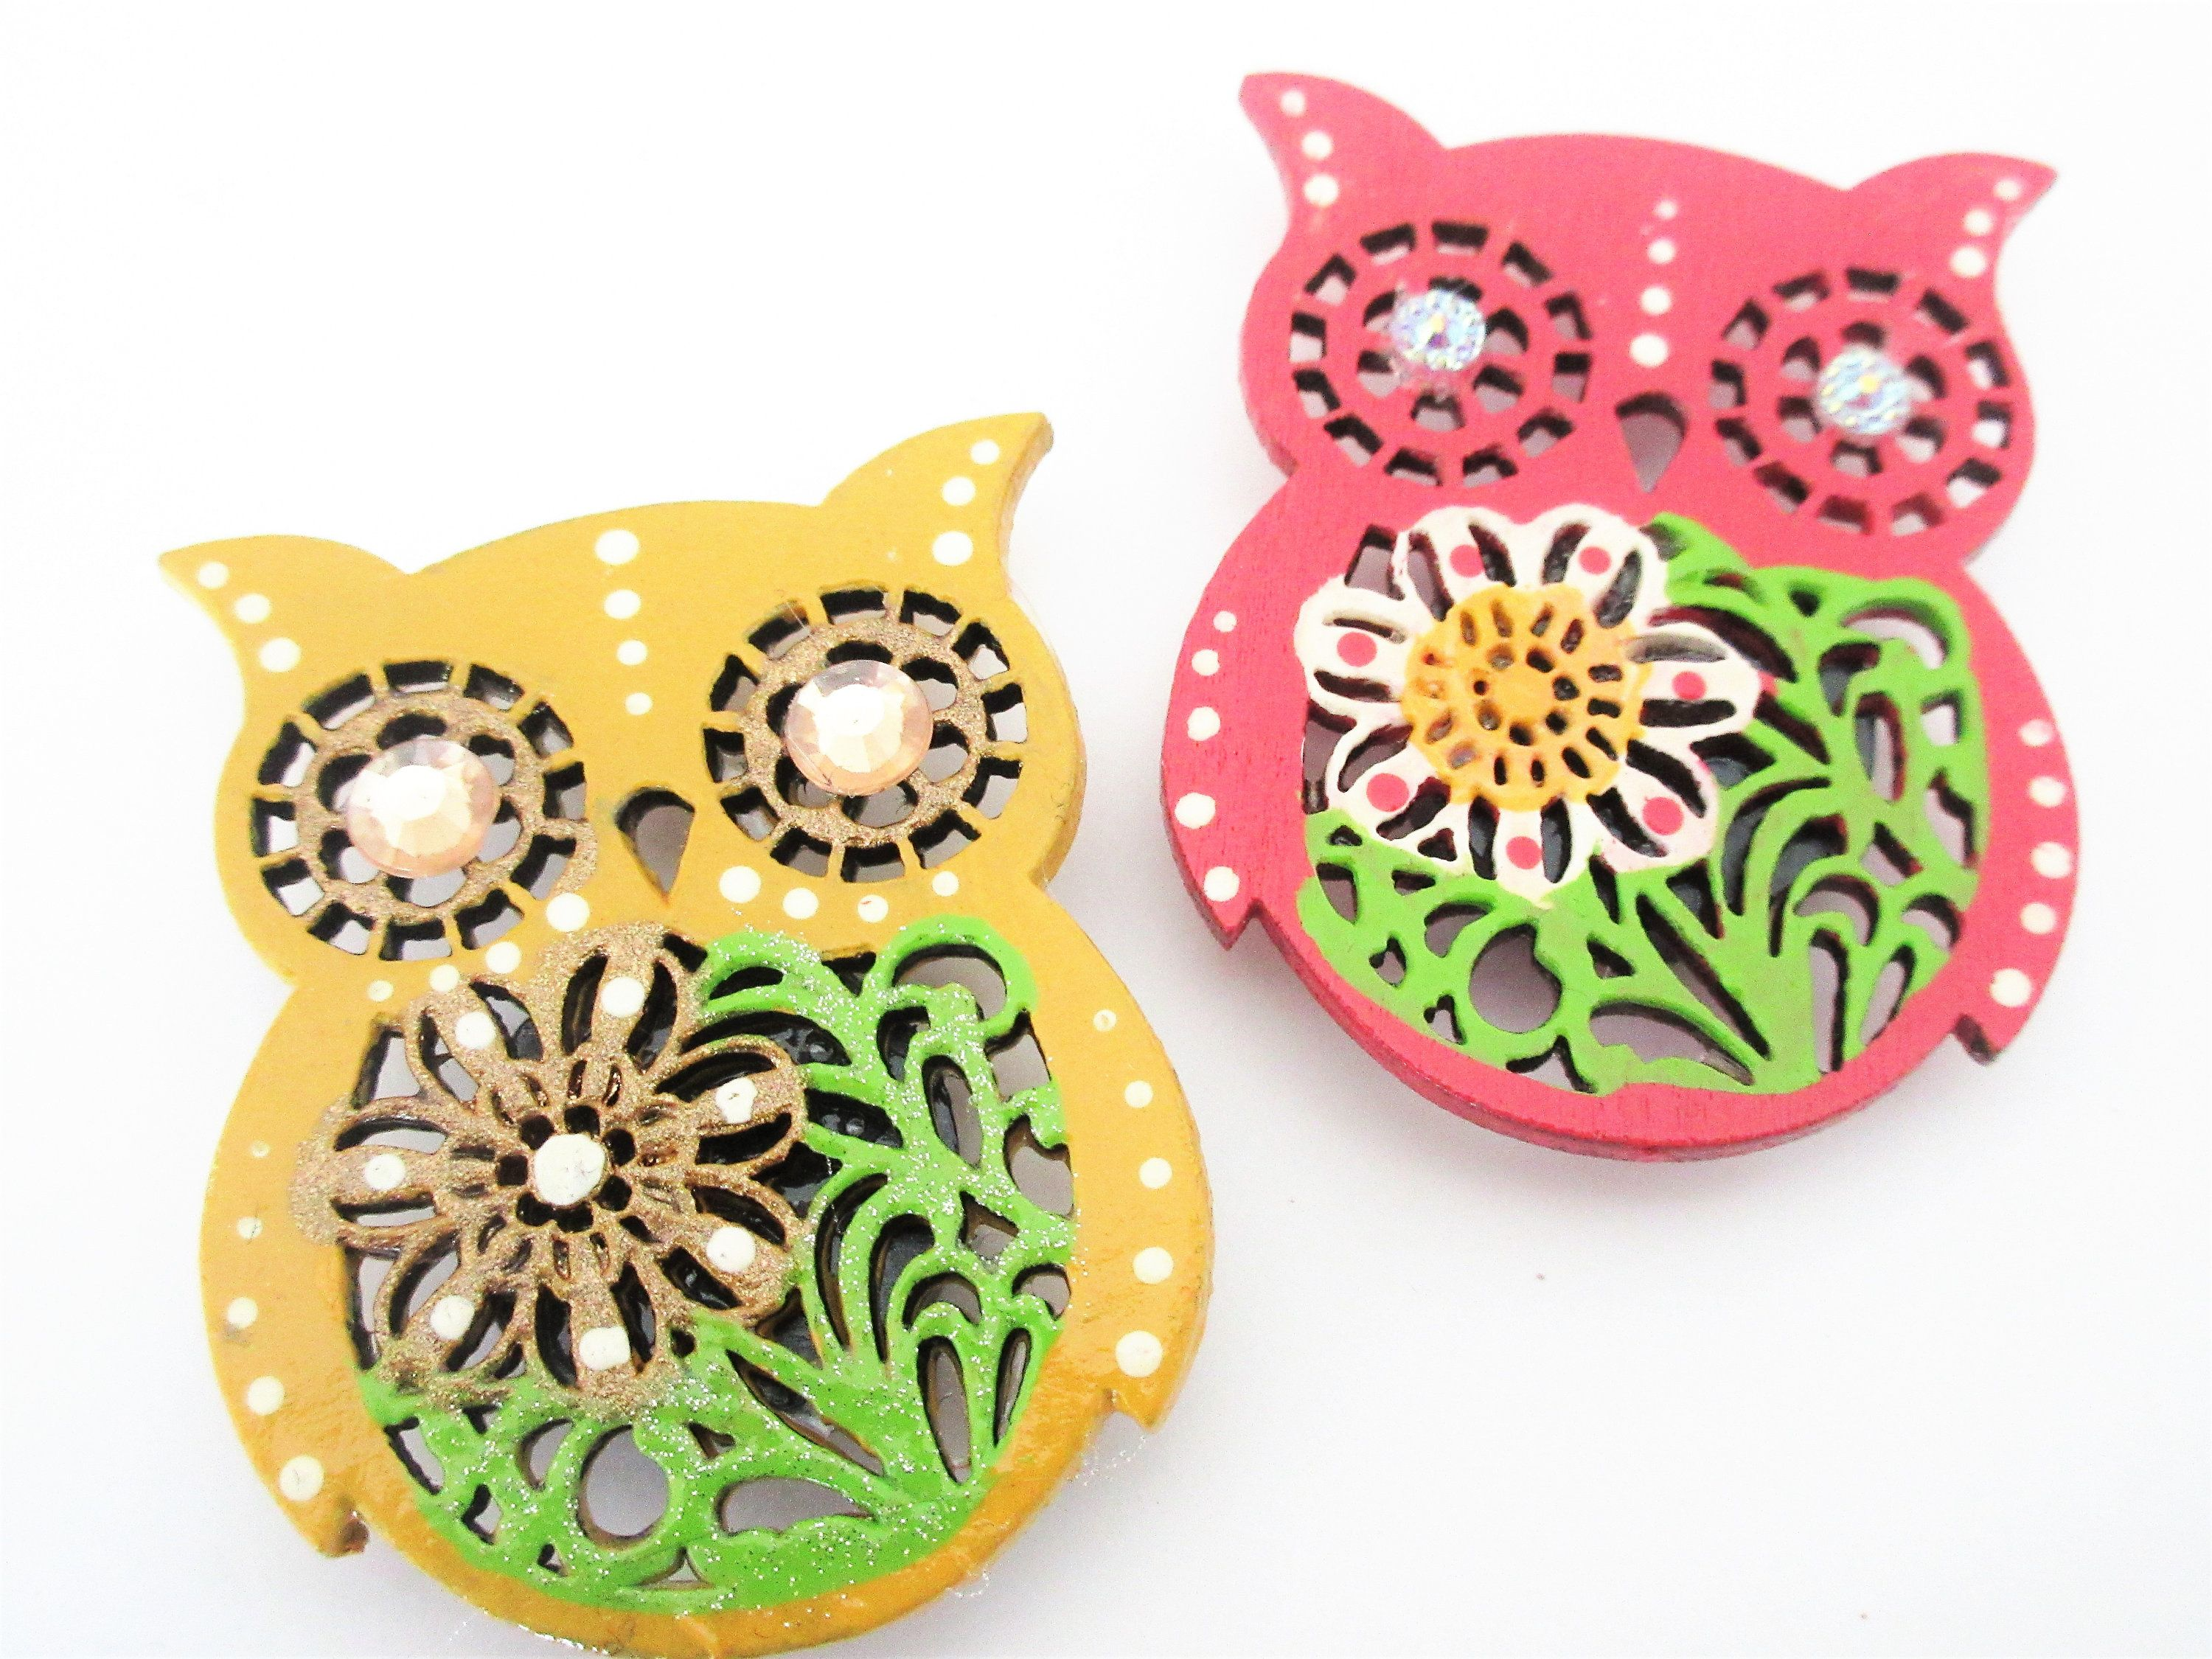 Owl Magnets Owl Decor Handpainted Magnets Painted Home Decor Kitchen Decor Owl Kitchen Small Gift Ideas Colourful Kitchen Decor Owls Floral Magnets Owl Decor Small Business Gifts